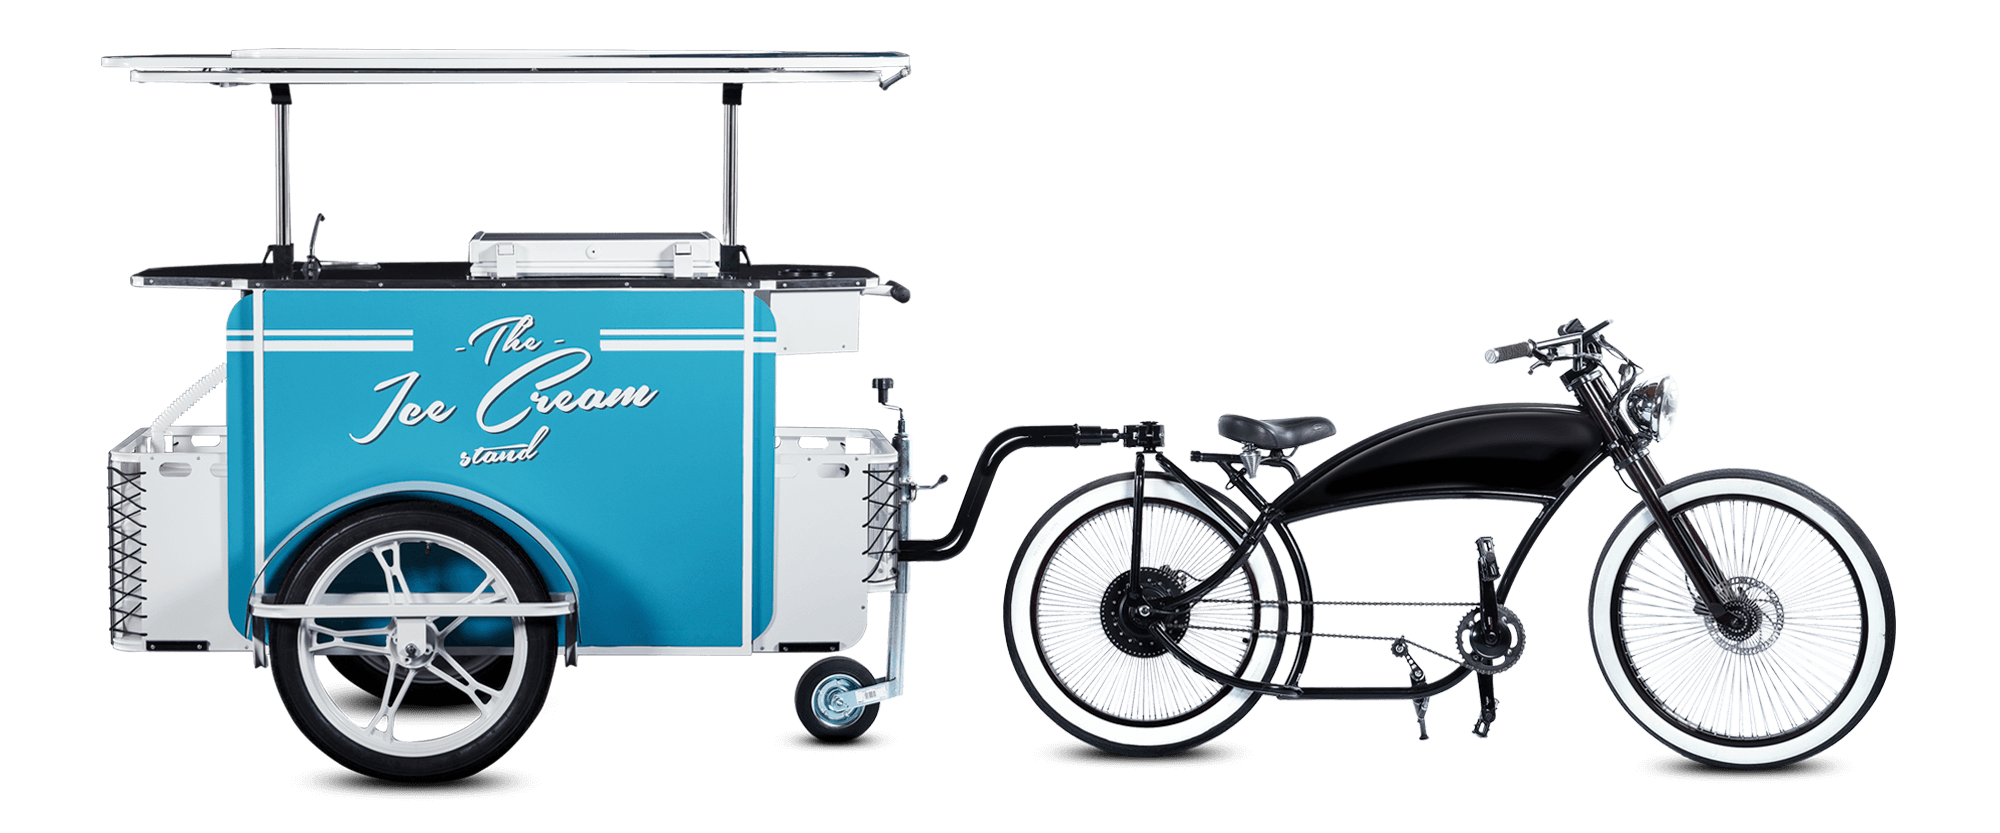 Ice cream bike by Bizz On Wheels